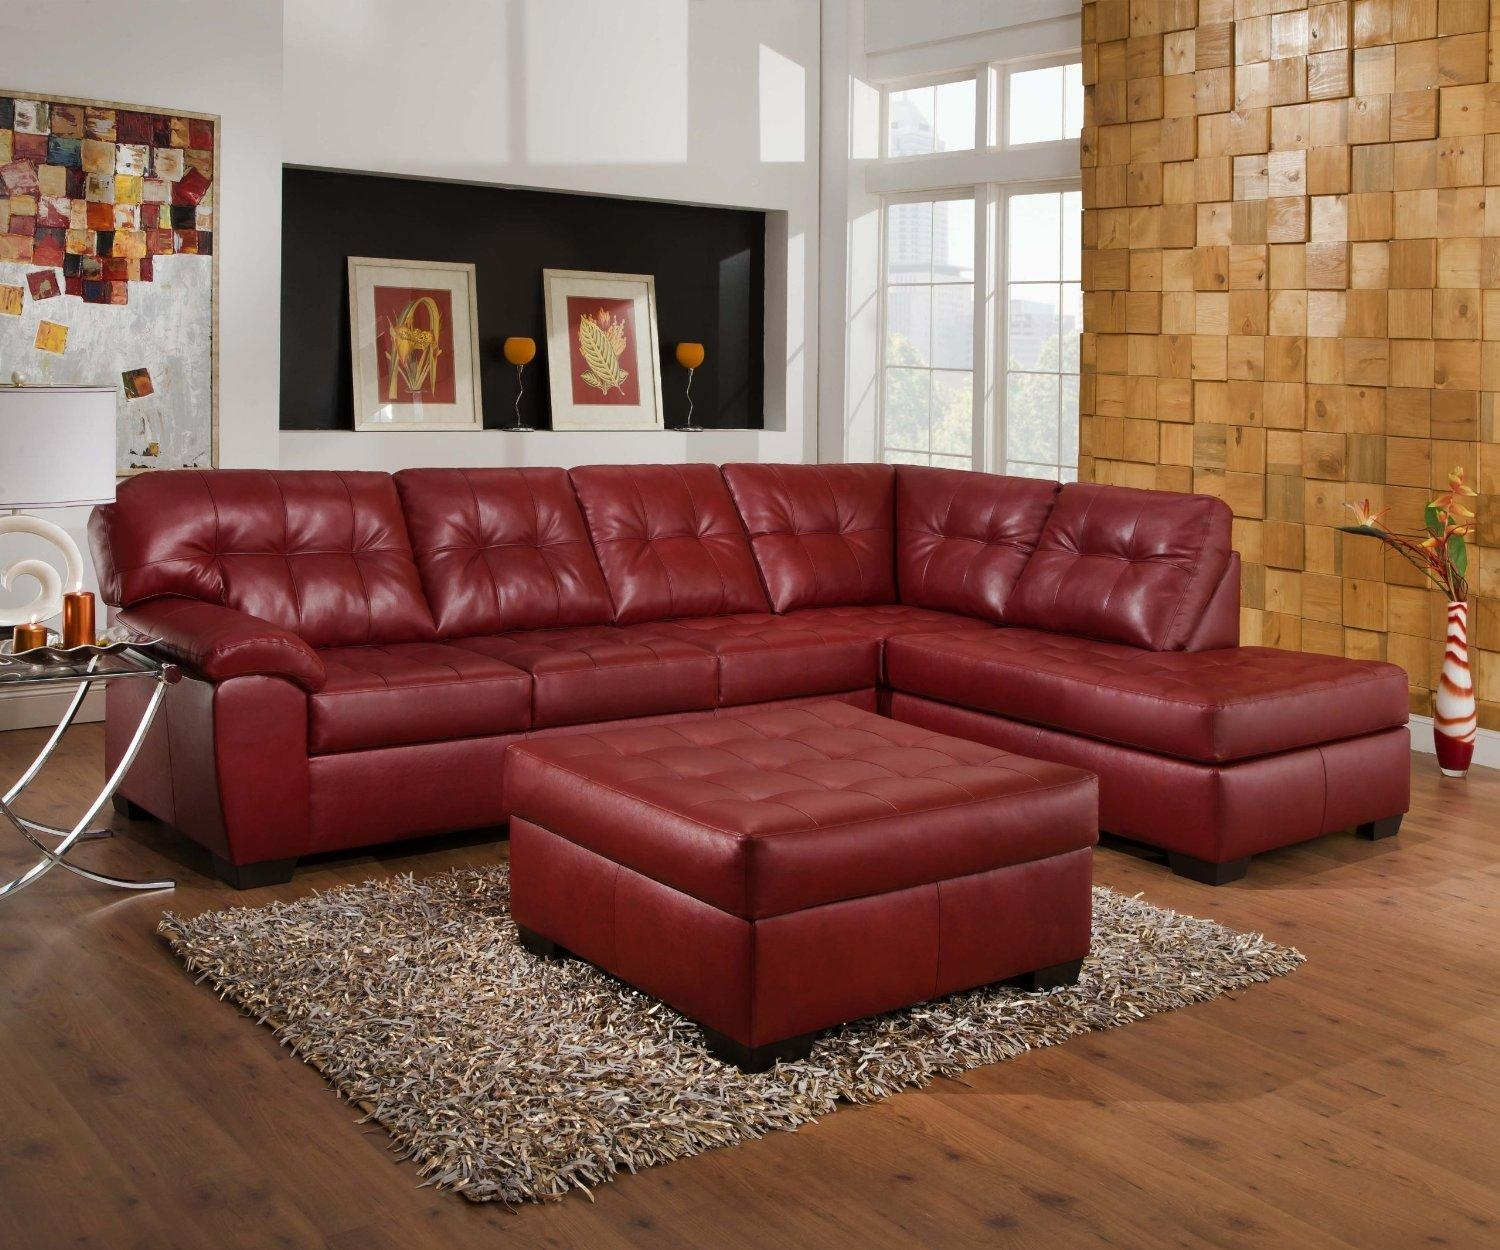 Burgundy Leather Sofa Set With Design Ideas 37114 | Kengire Intended For Burgundy Leather Sofa Sets (View 9 of 20)